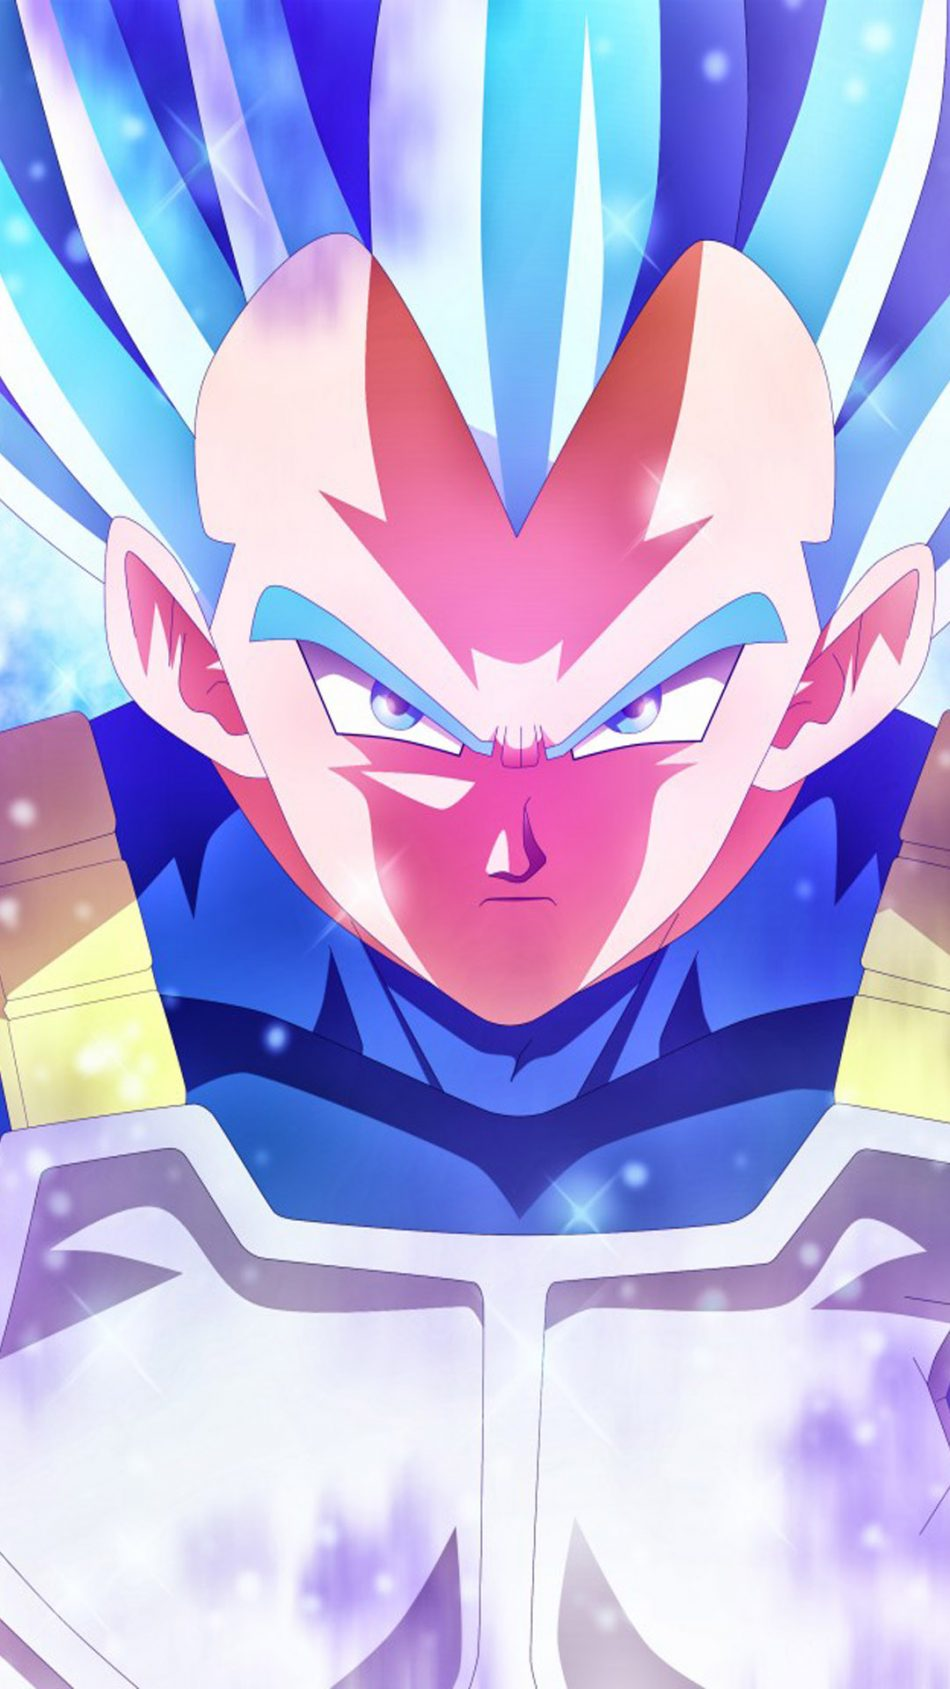 Download vegeta dragon ball super free pure 4k ultra hd - Vegeta wallpapers for mobile ...